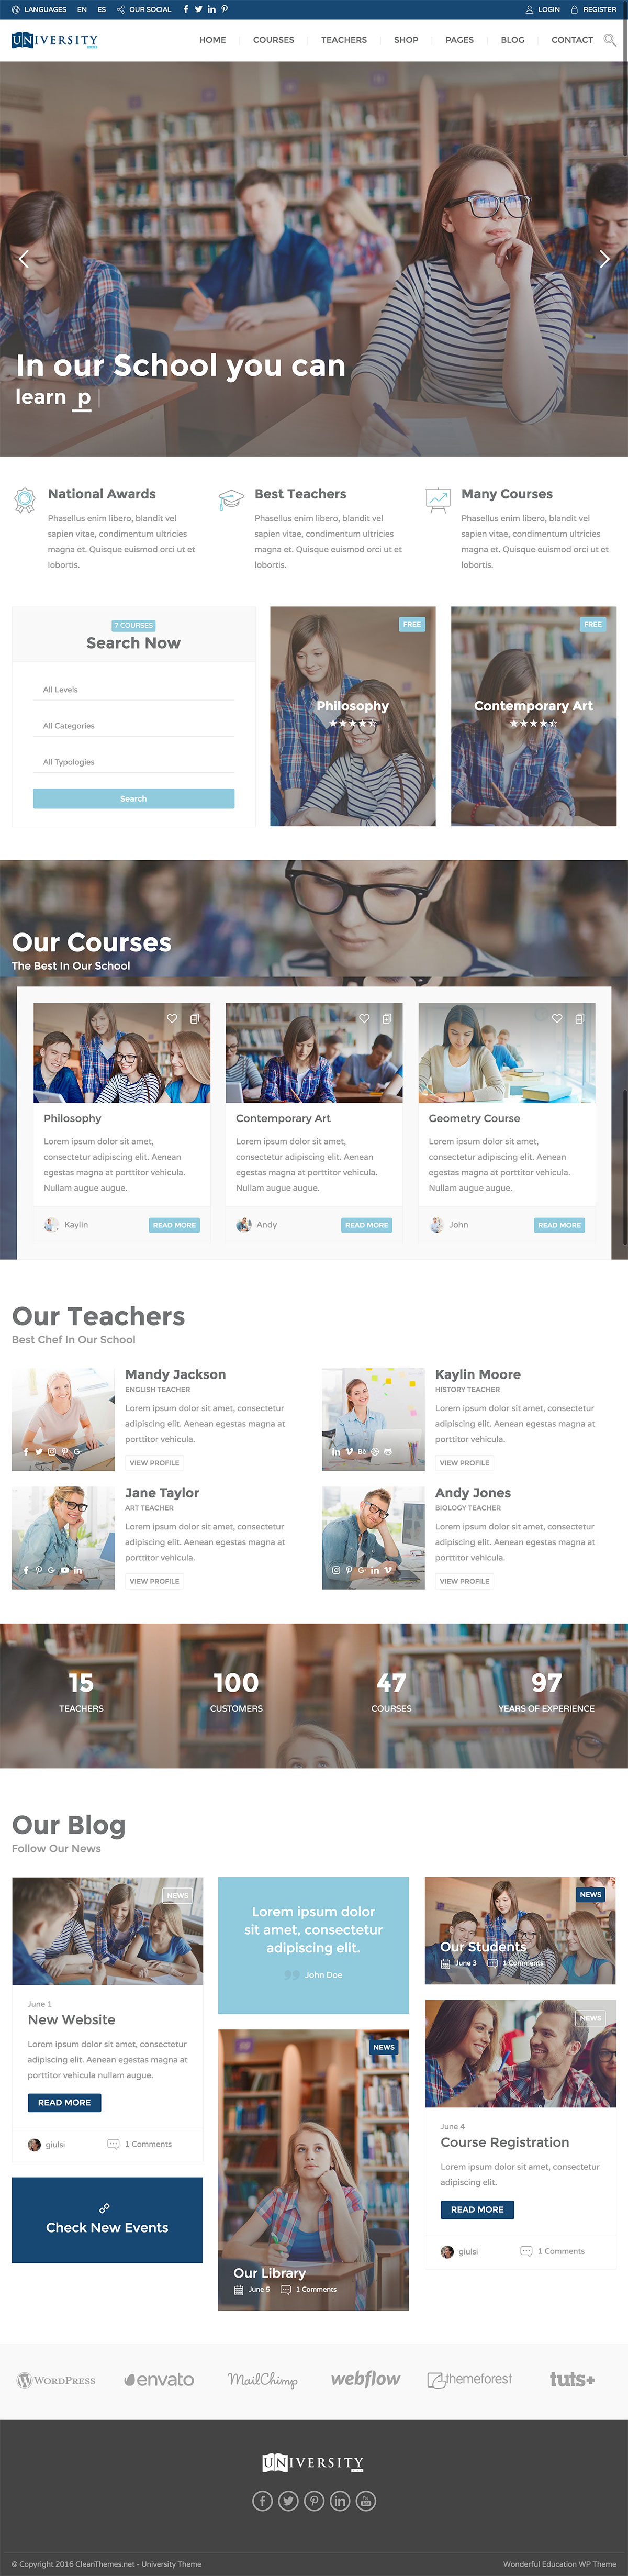 Education Pack - Education Learning WordPress Theme